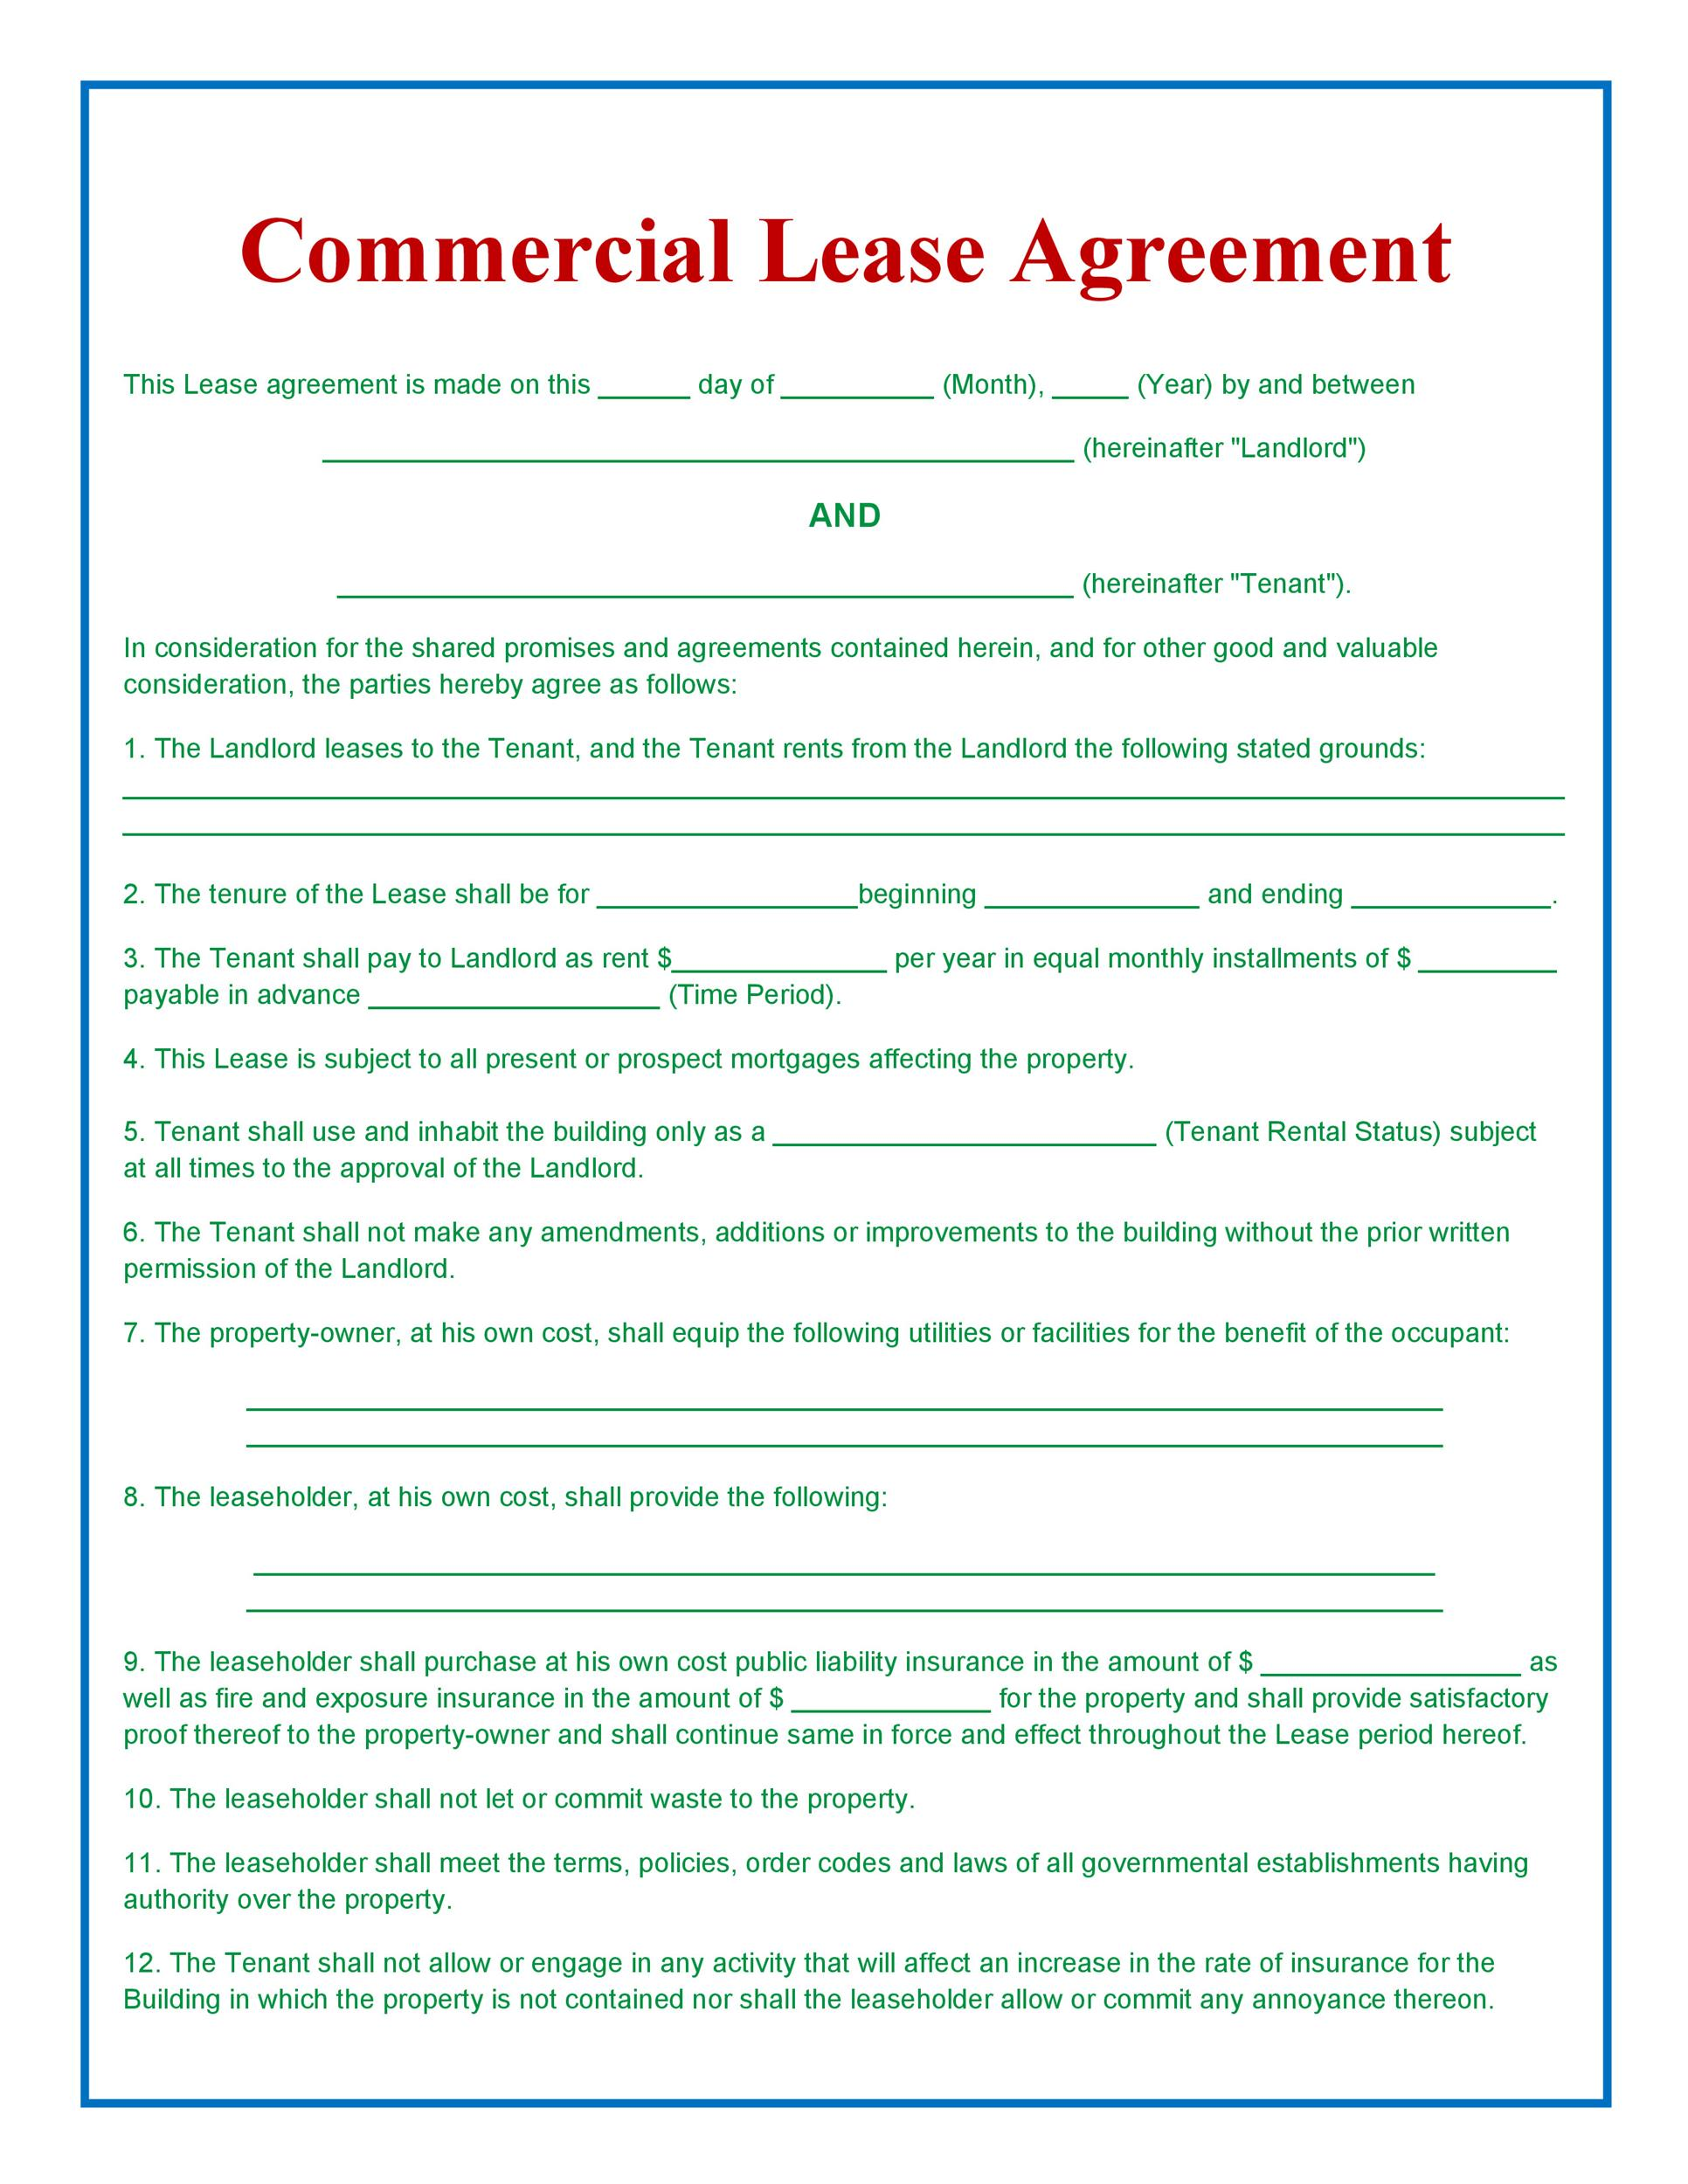 Free Commercial Lease Agreement Template 18